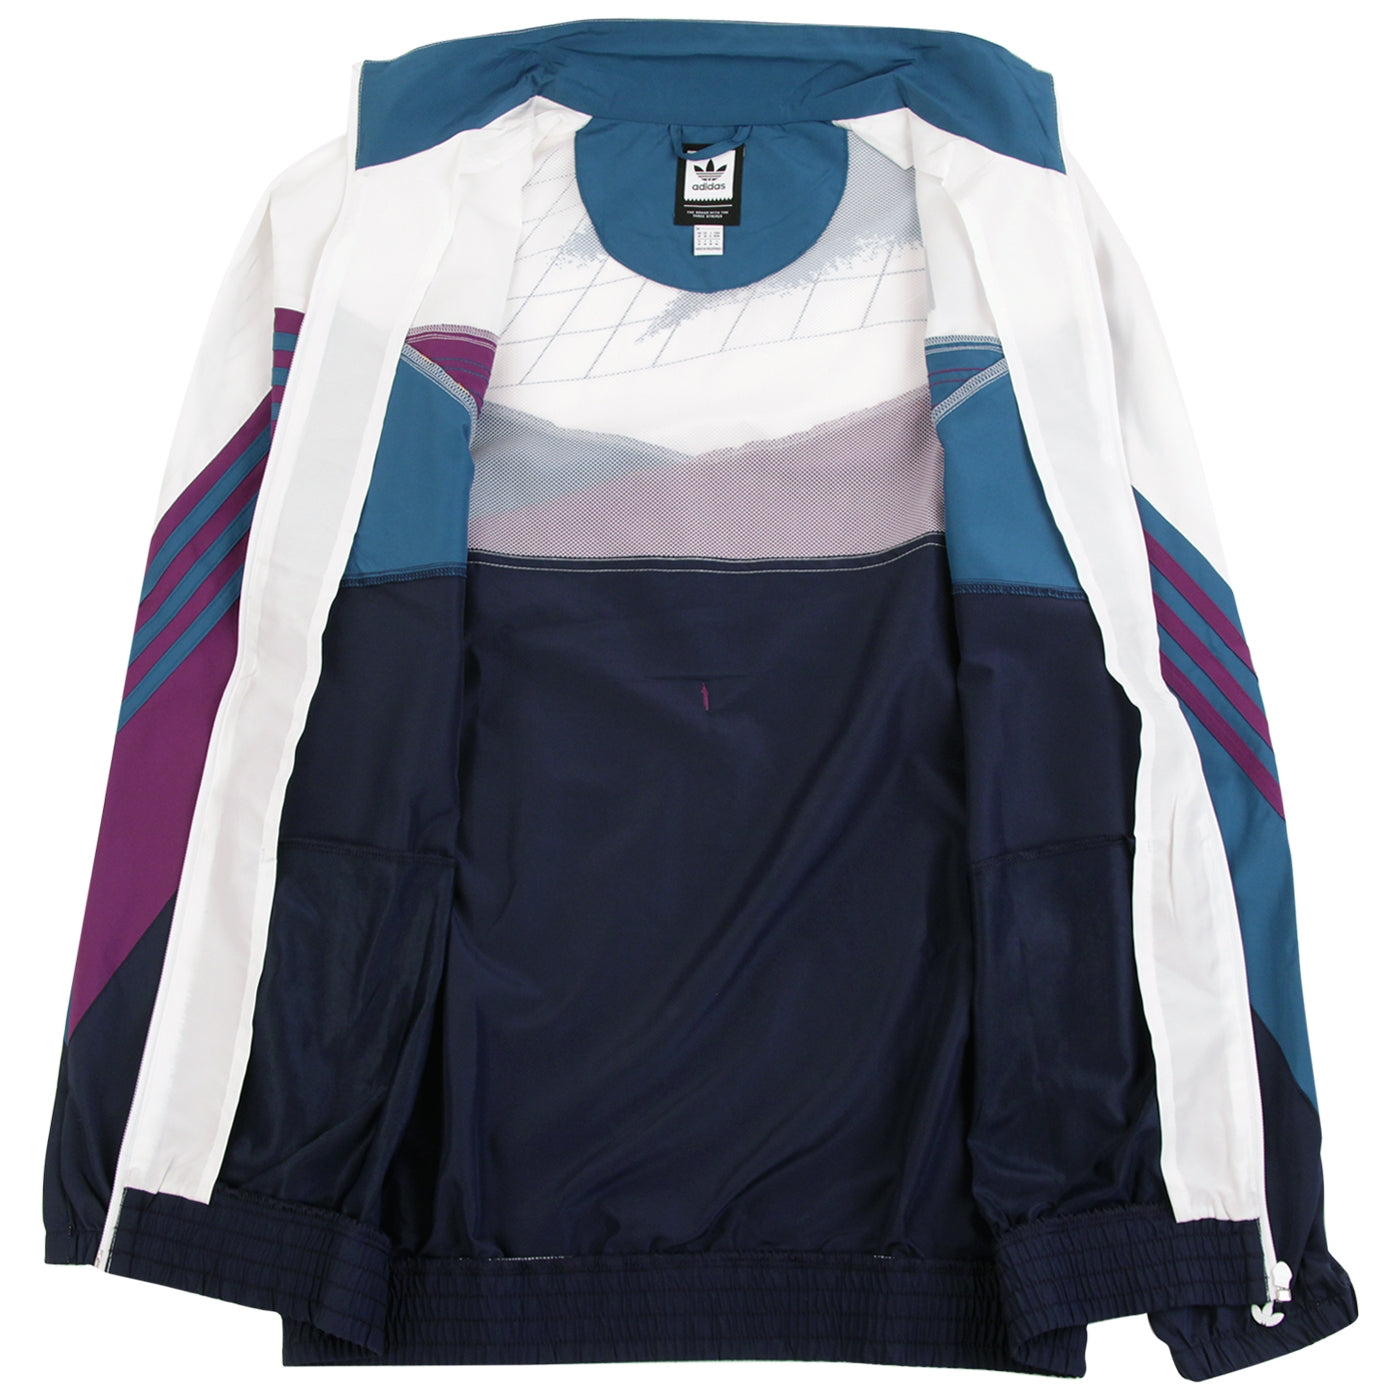 6078f905957 The Court Jacket in White / Collegiate Navy / Tribe Purple / Real ...